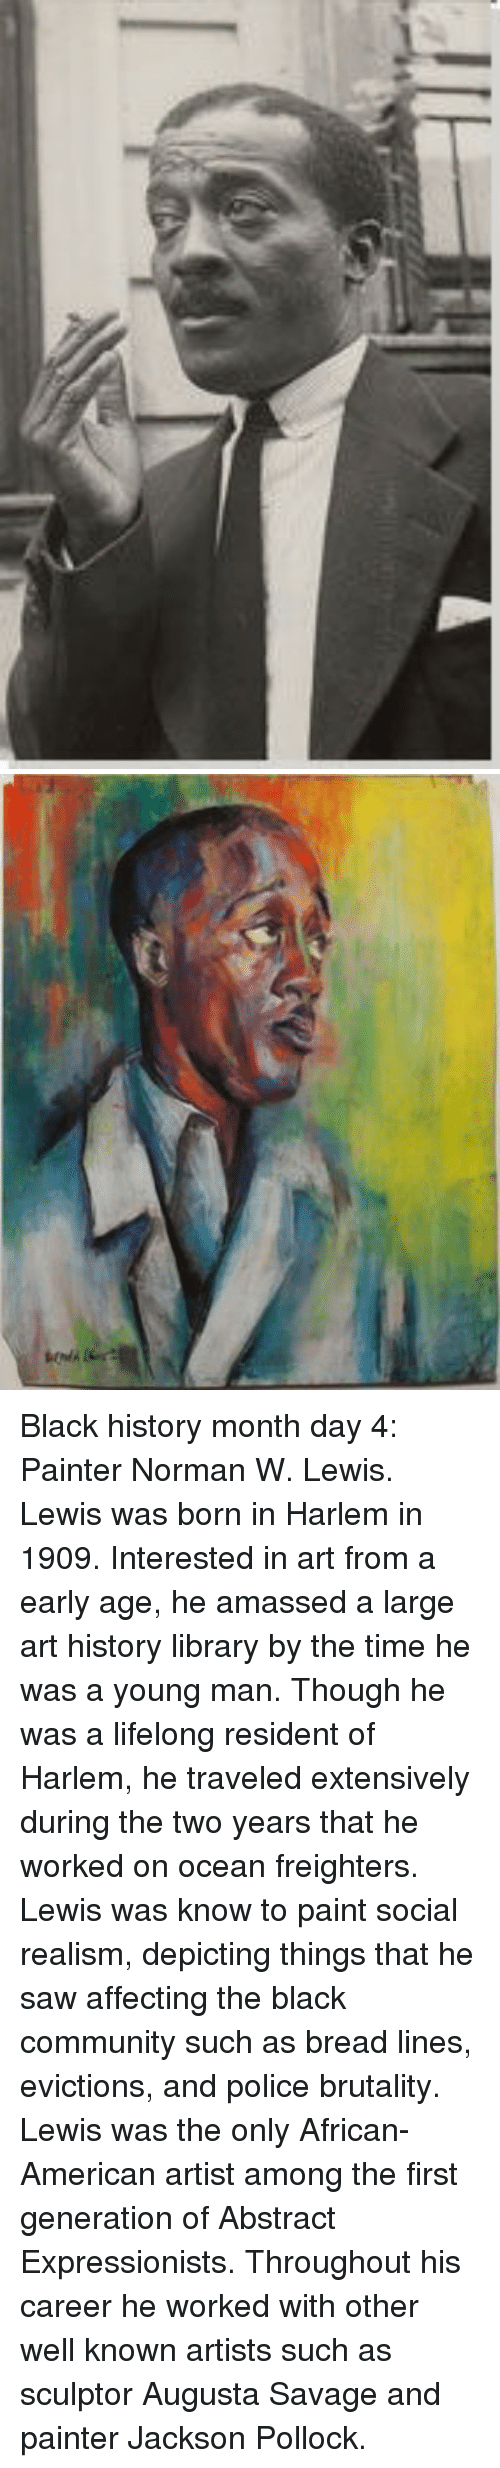 Black History Month, Community, and Police: <p>Black history month day 4: Painter Norman W. Lewis.</p>  <p>Lewis was born in Harlem in 1909. Interested in art from a early age, he amassed a large art history library by the time he was a young man. Though he was a lifelong resident of Harlem, he traveled extensively during the two years that he worked on ocean freighters. </p>  <p>Lewis was know to paint social realism, depicting things that he saw affecting the black community such as bread lines, evictions, and police brutality. </p>  <p>Lewis was the only African- American artist among the first generation of Abstract Expressionists. Throughout his career he worked with other well known artists such as sculptor Augusta Savage and painter Jackson Pollock.</p>